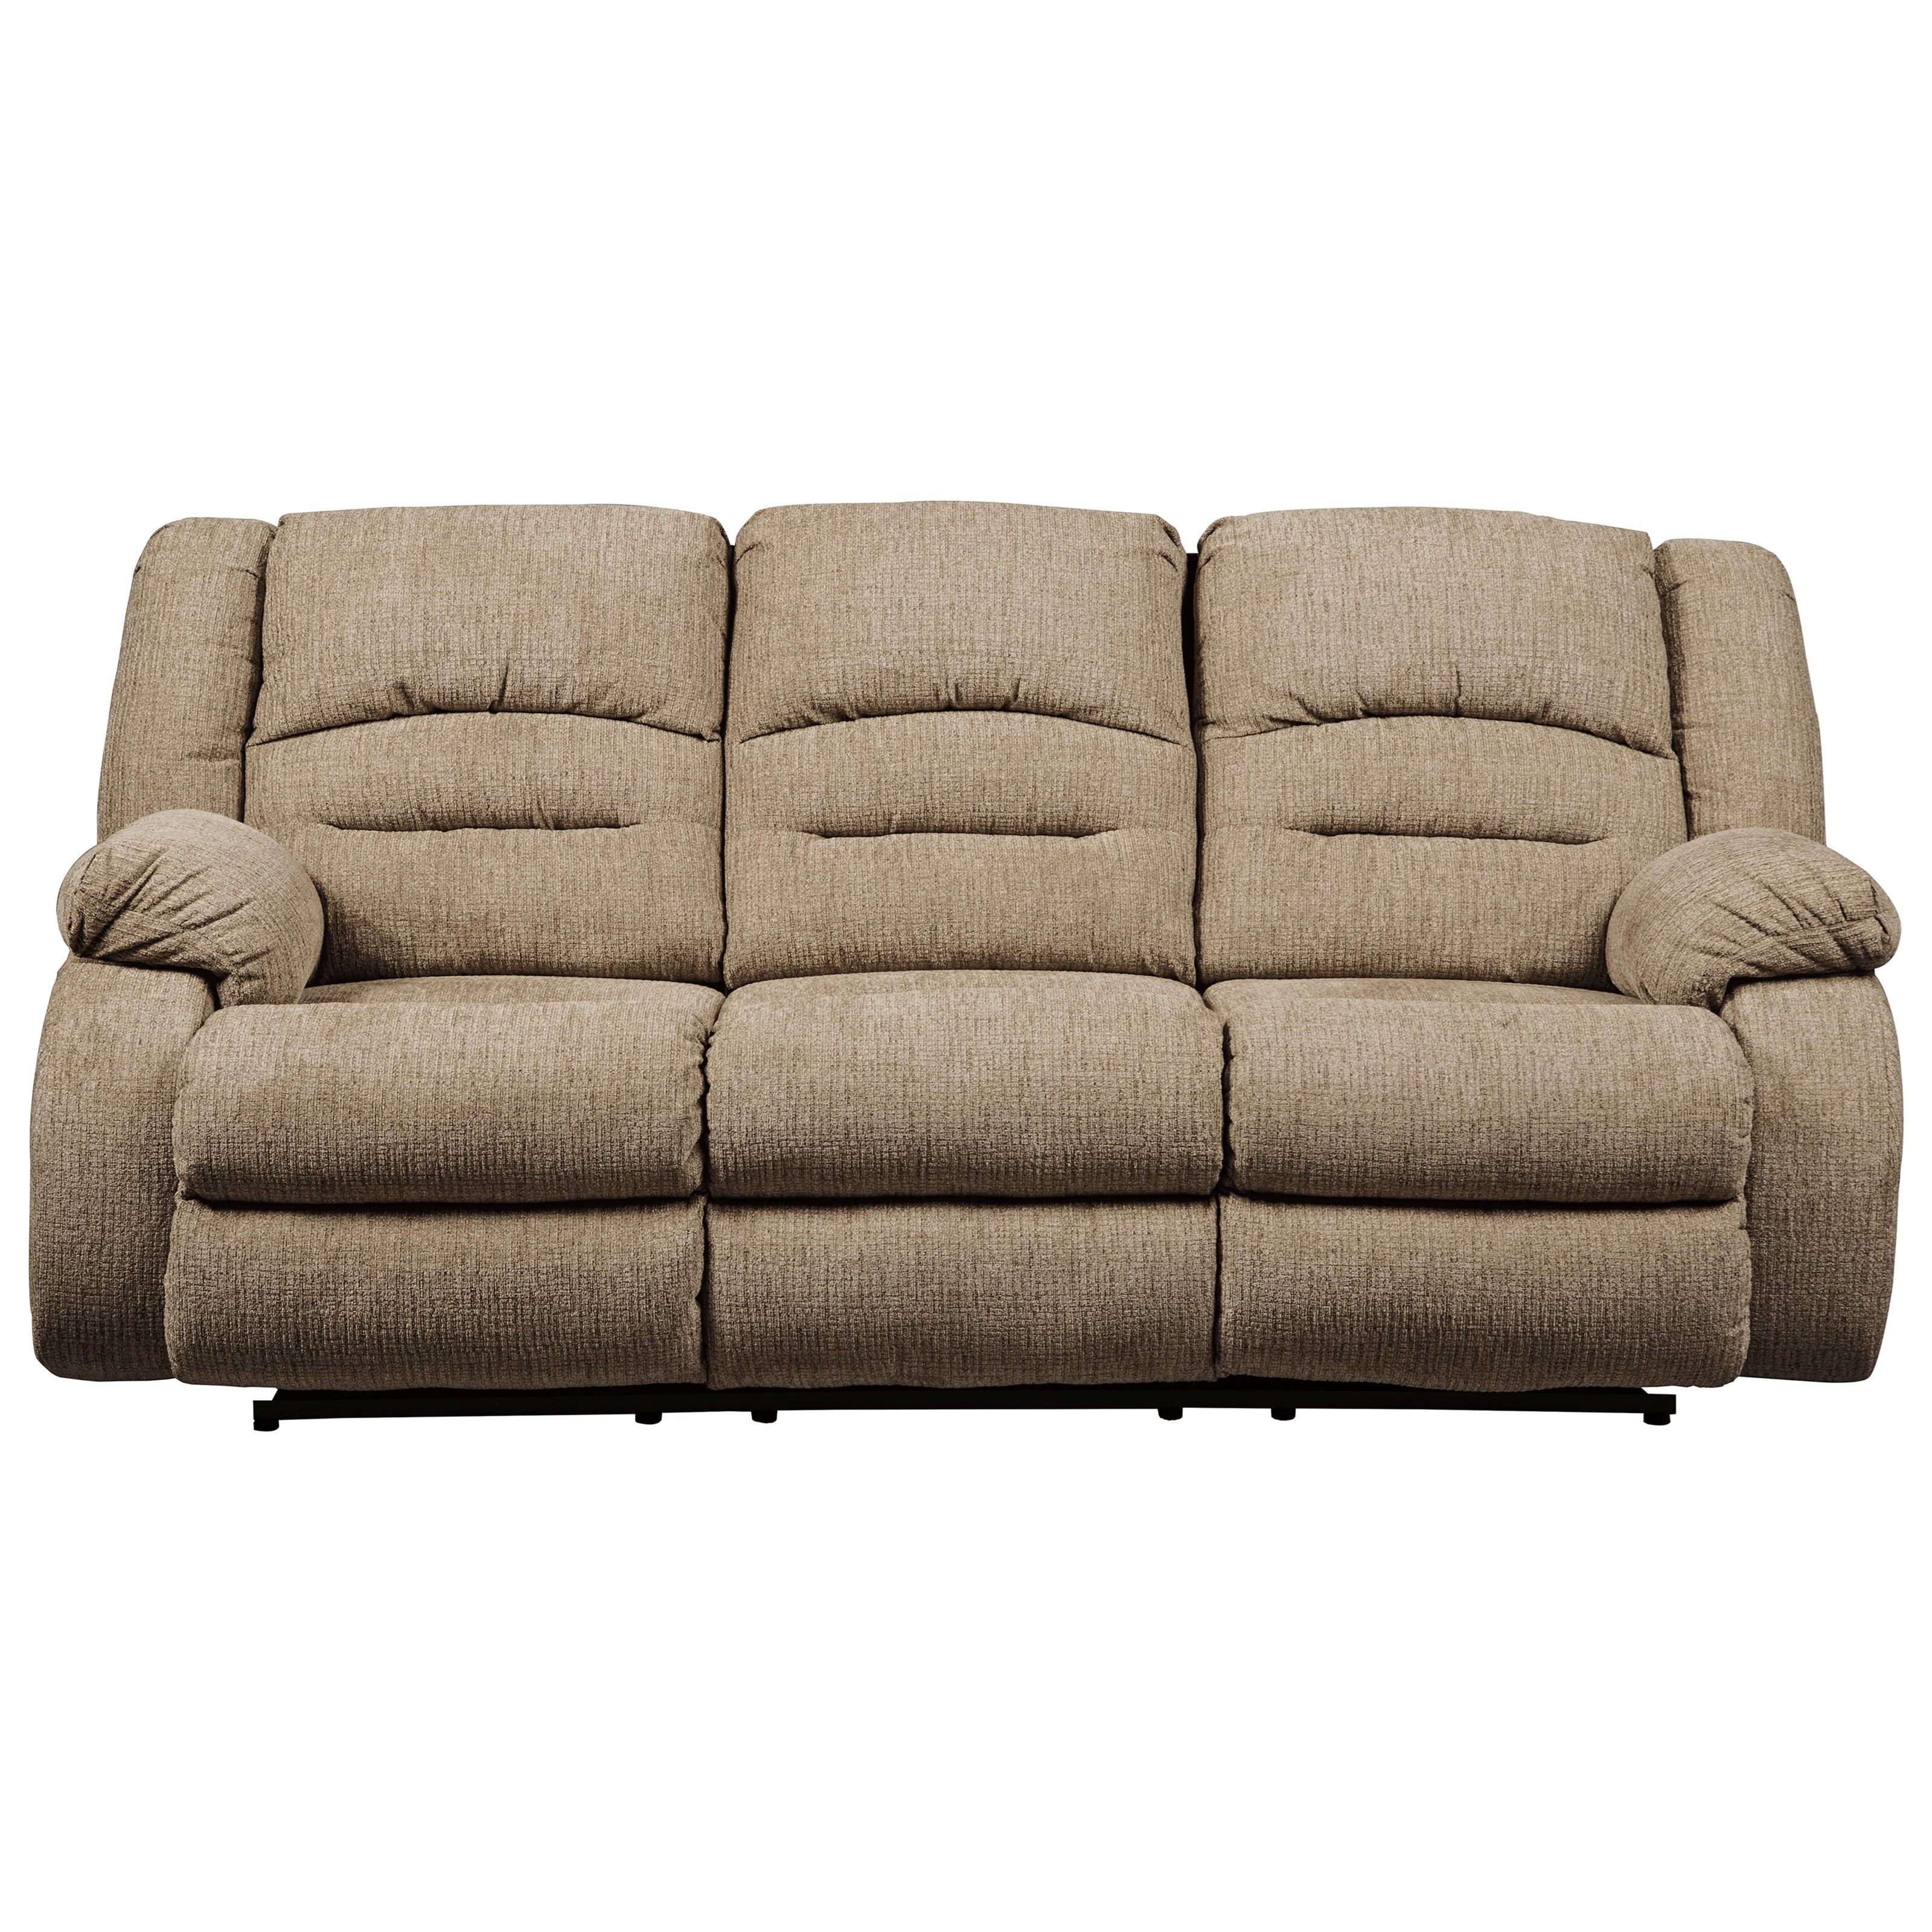 Signature Design by Ashley Labarre Power Reclining Sofa - Item Number: 8140315